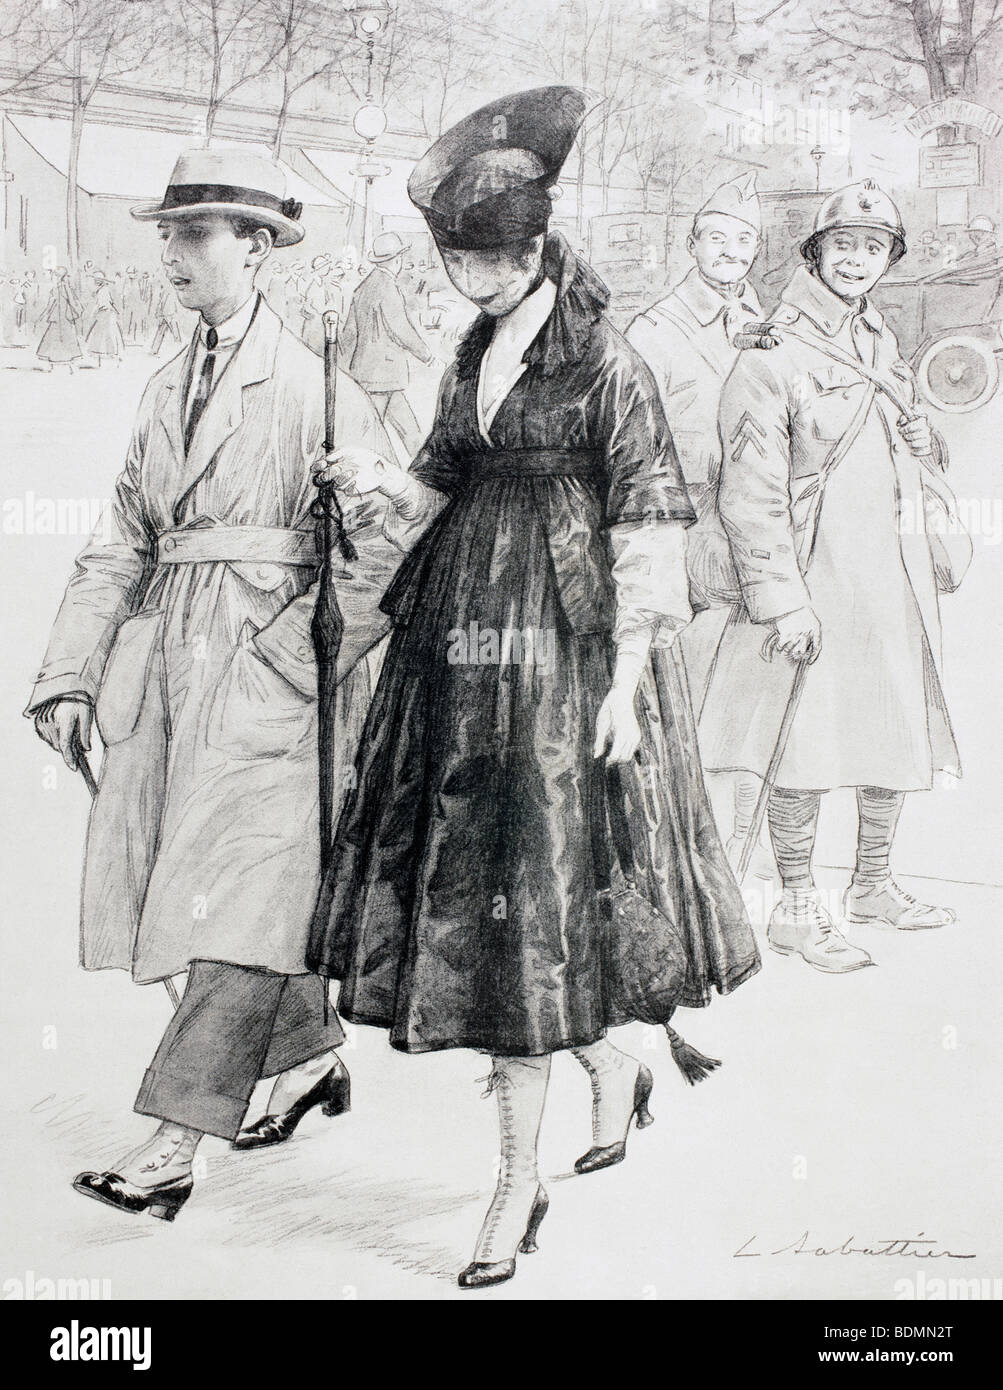 During the First World War two French soldiers on leave wryly observe an elegantly dressed civilian couple in a - Stock Image